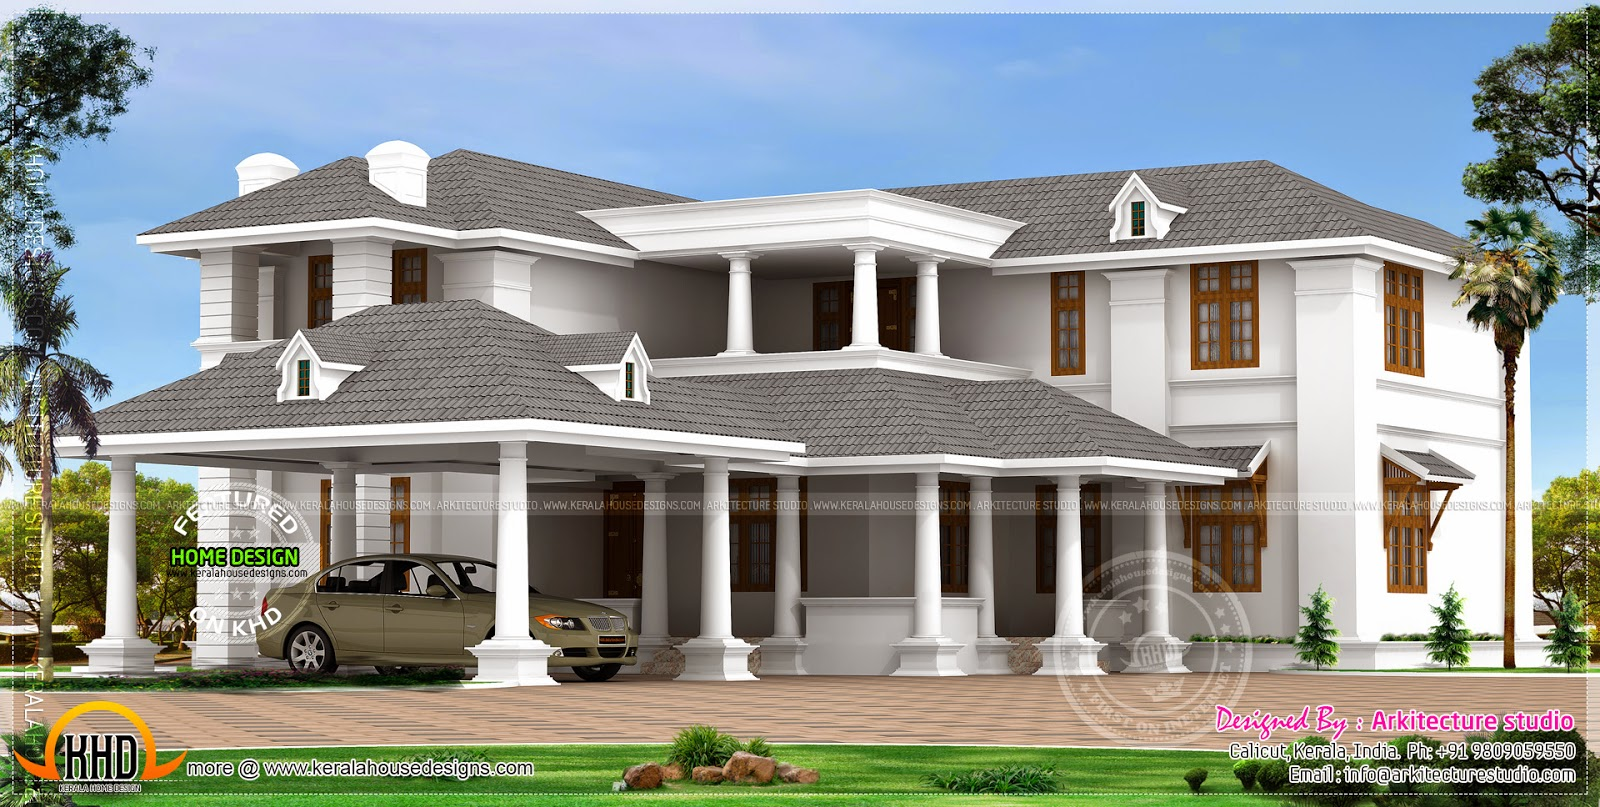 Big luxury home design kerala home design and floor plans for Huge home plans